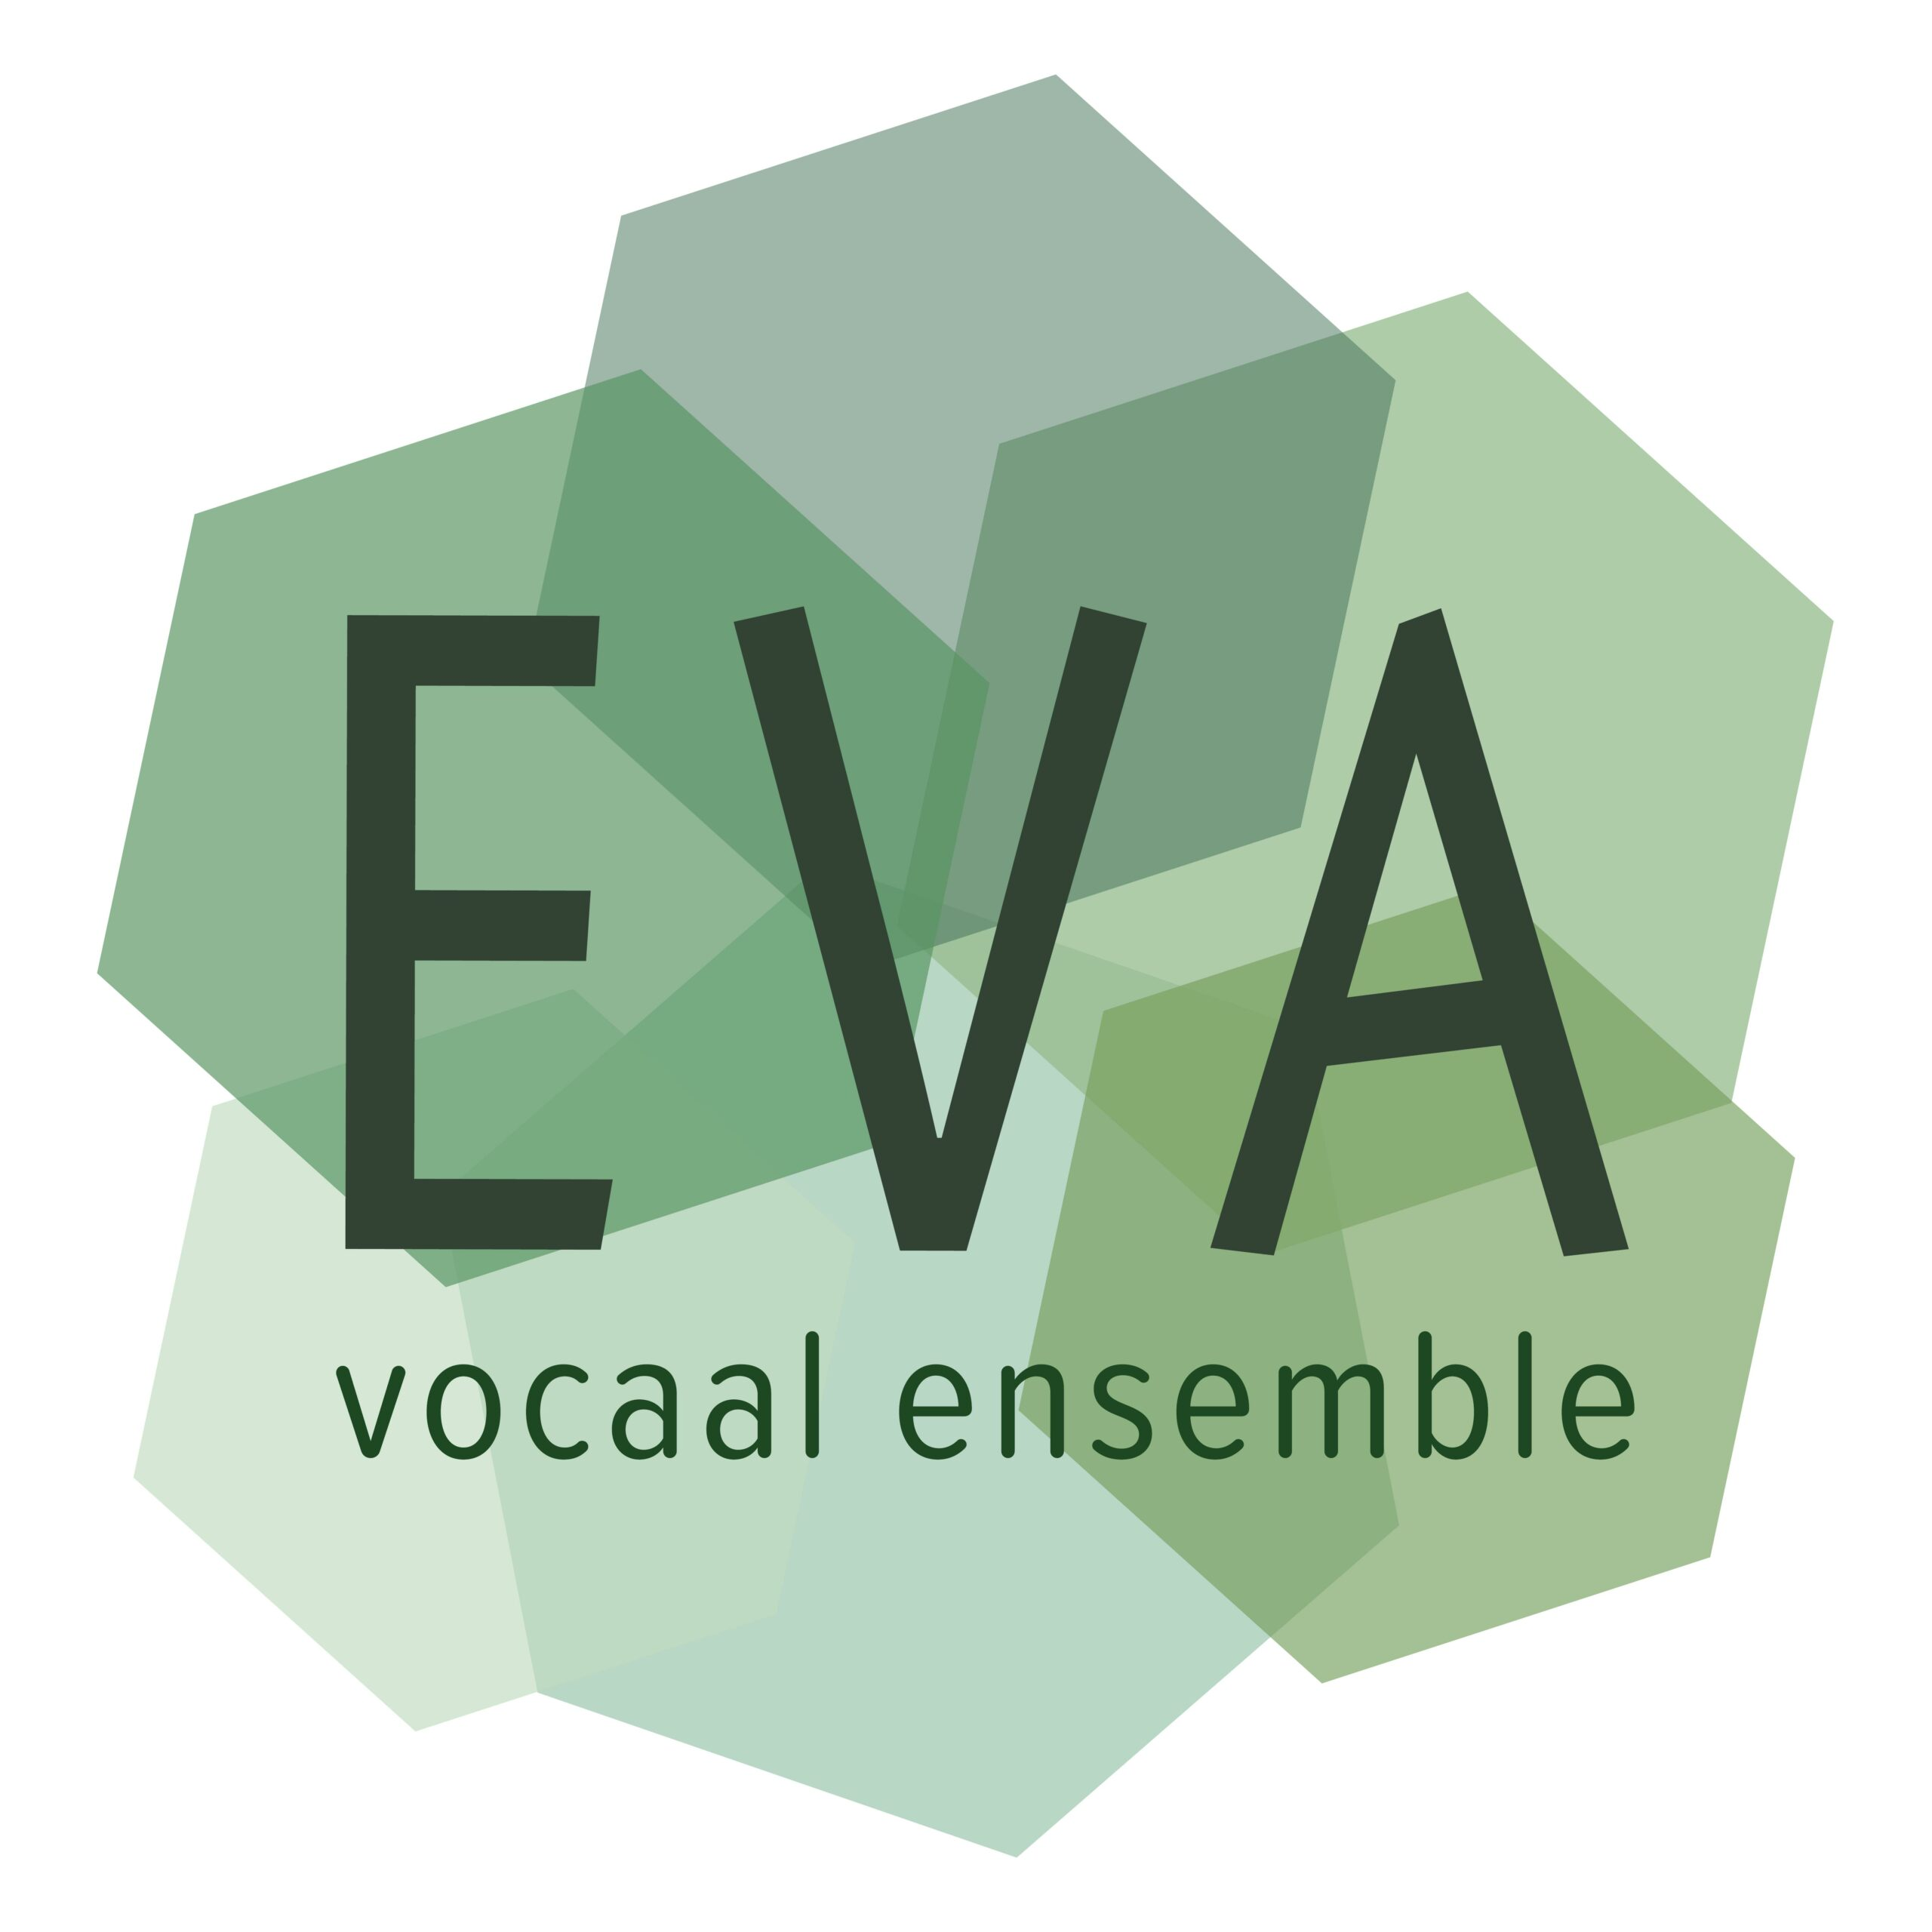 EVA vocaal ensemble